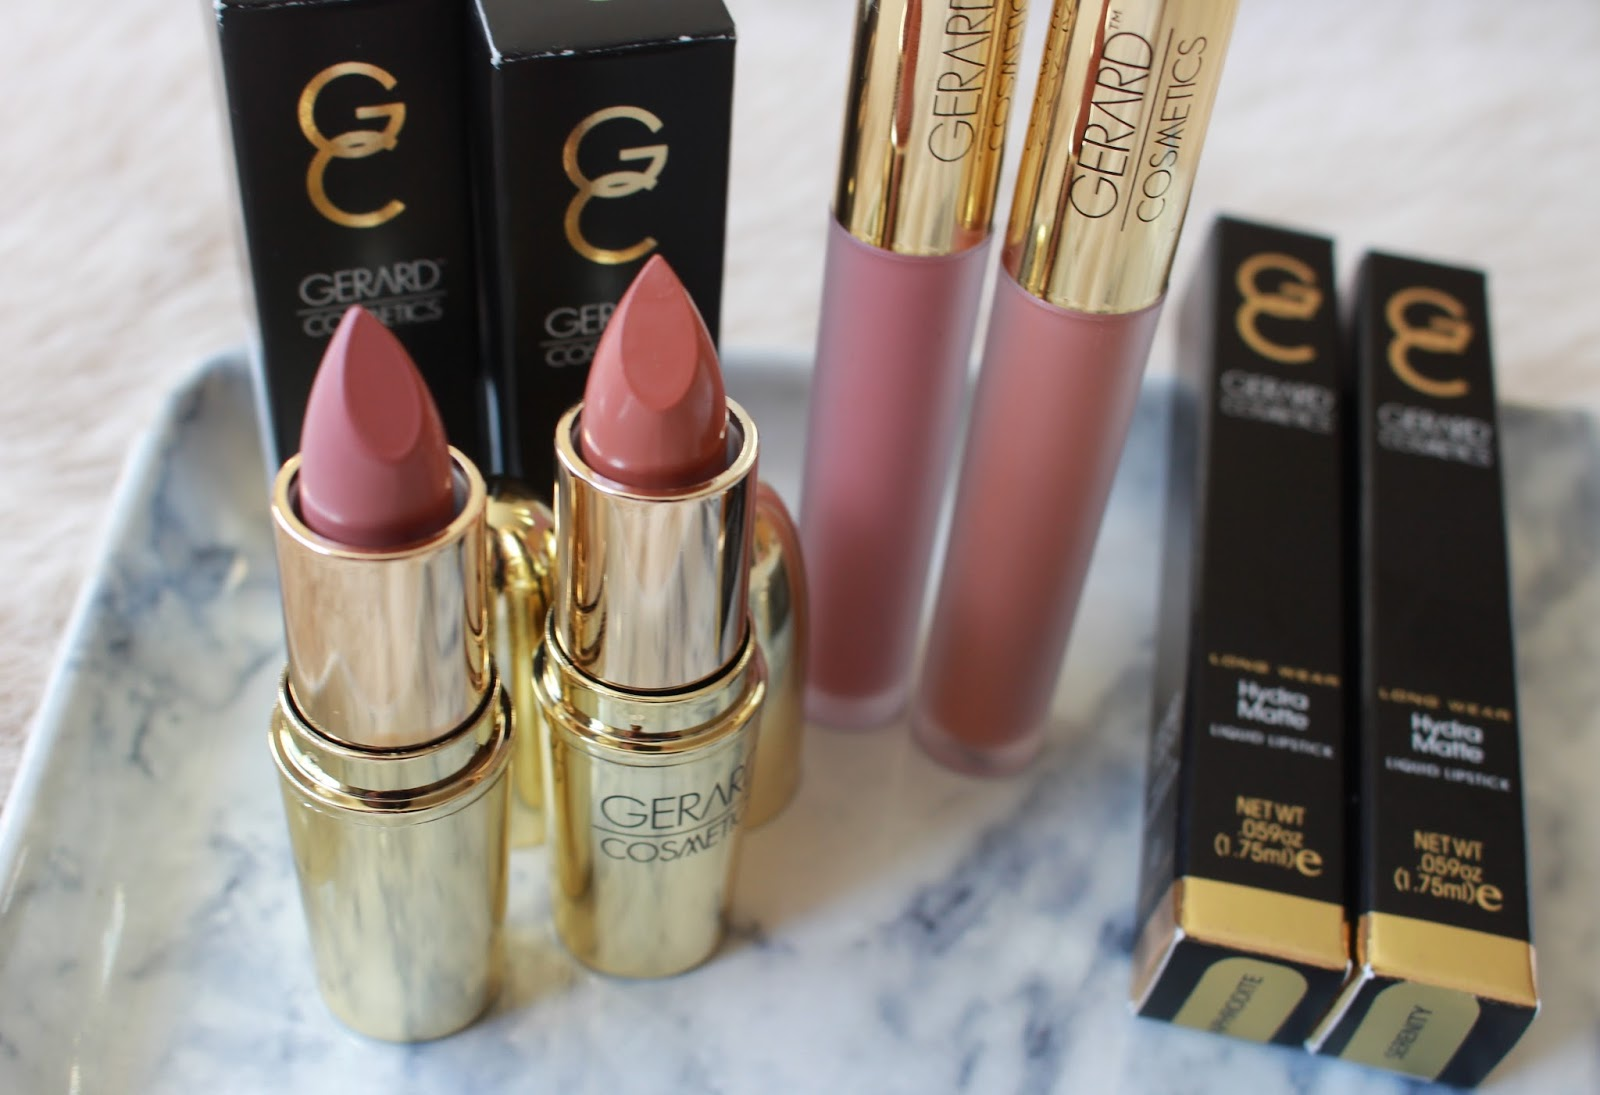 Gerard Cosmetics Review UK